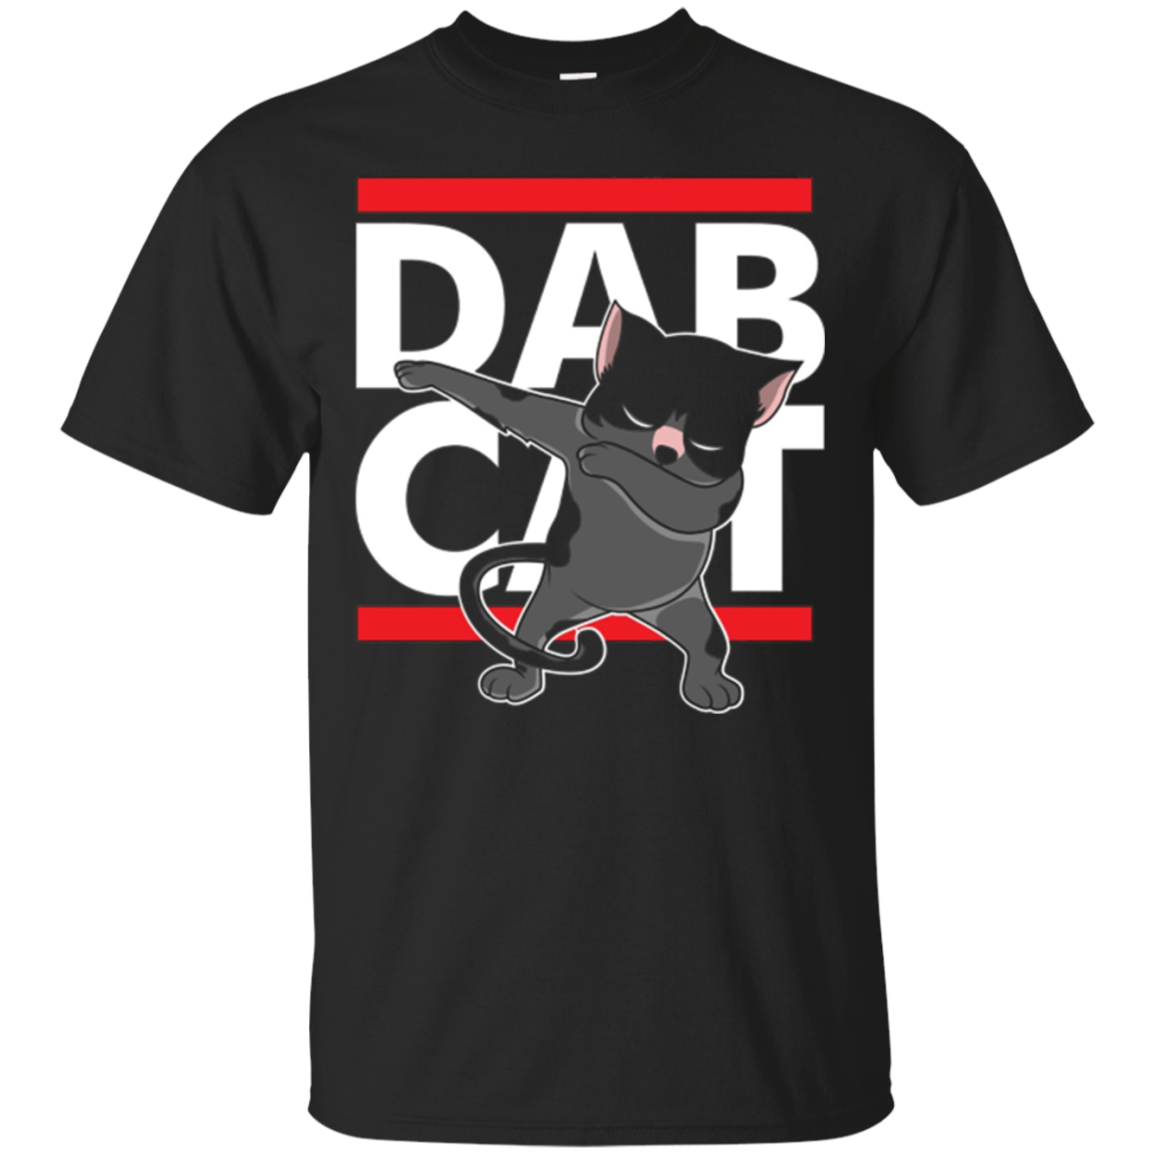 Dabbing Dab Cat Shirt | Dancing Cat T Shirt | Funny Cat Tee